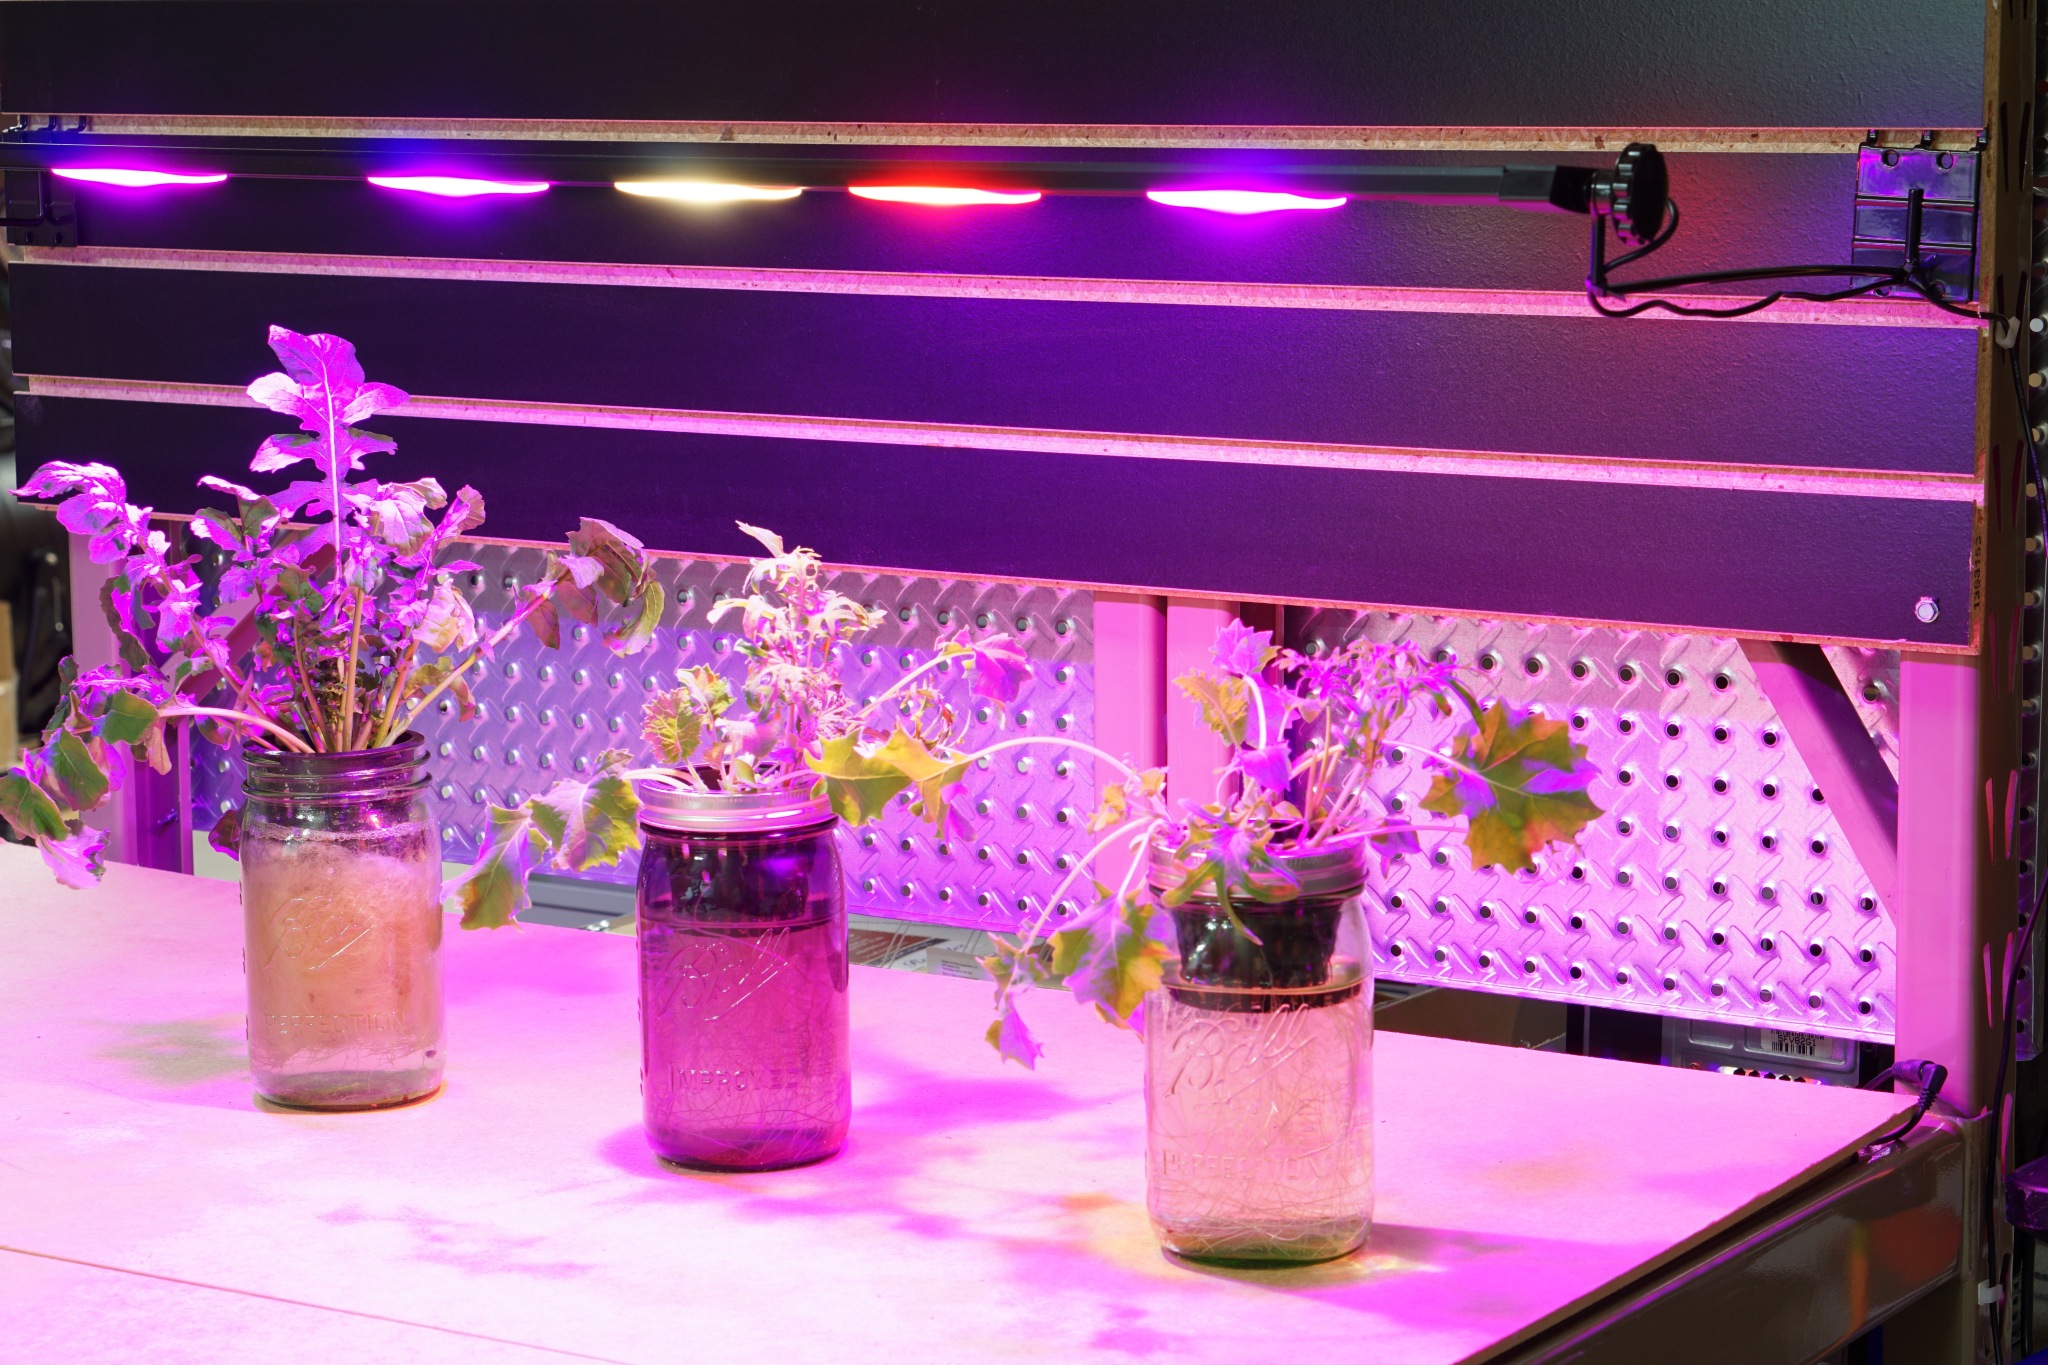 F6 Spectrum, horticultural lighting, hydroponics, passive hydroponics, vertical growing, tower garden